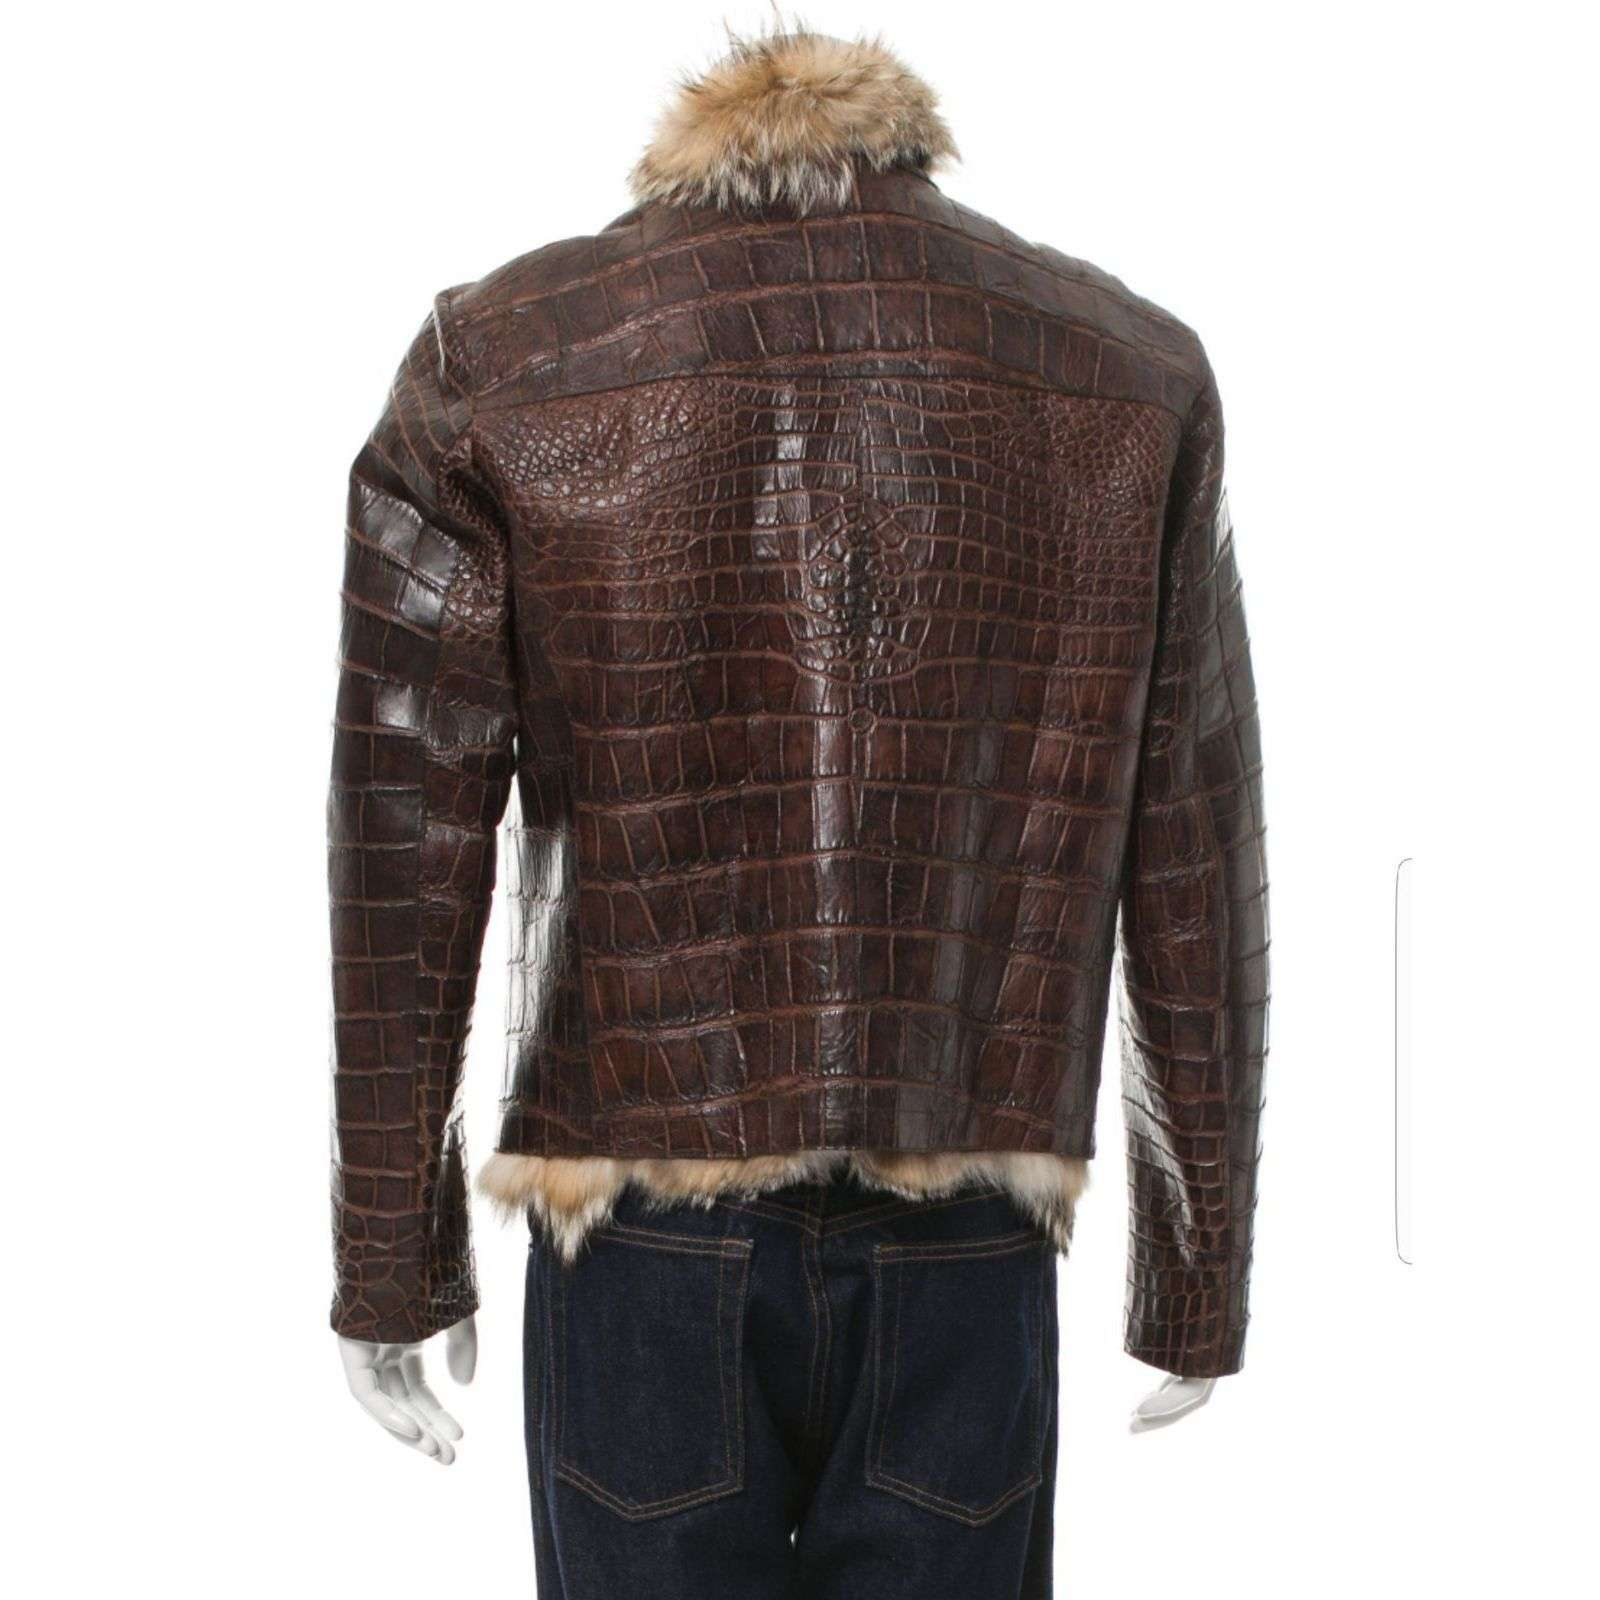 MAGARMUCH - FUR LINED ALLIGATOR BIKER JACKET